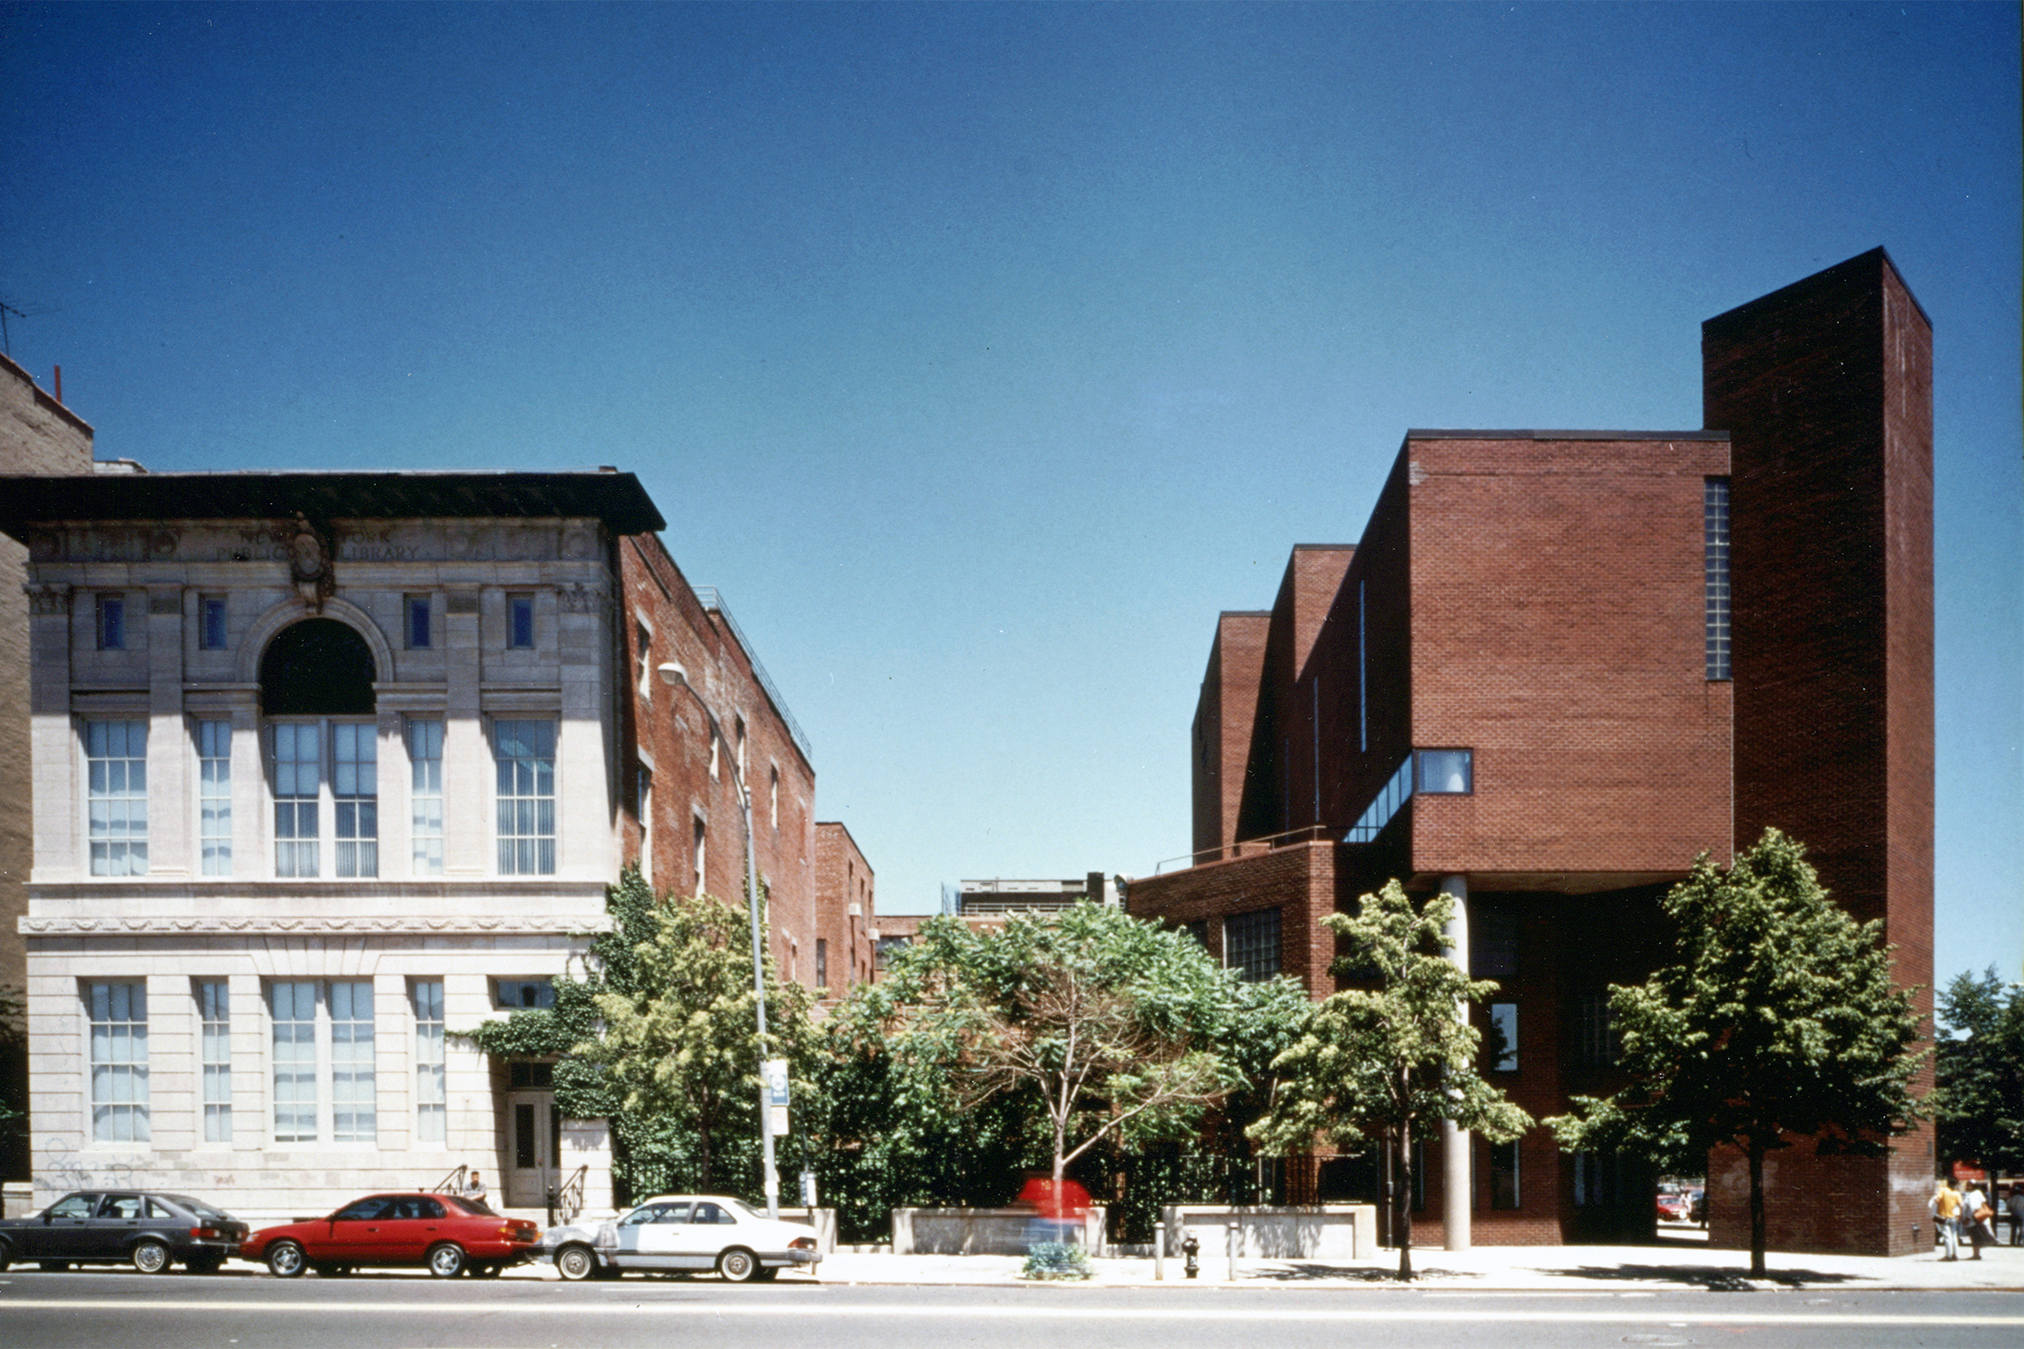 Schomburg Center for Research in Black Culture, New York, NY (1981)